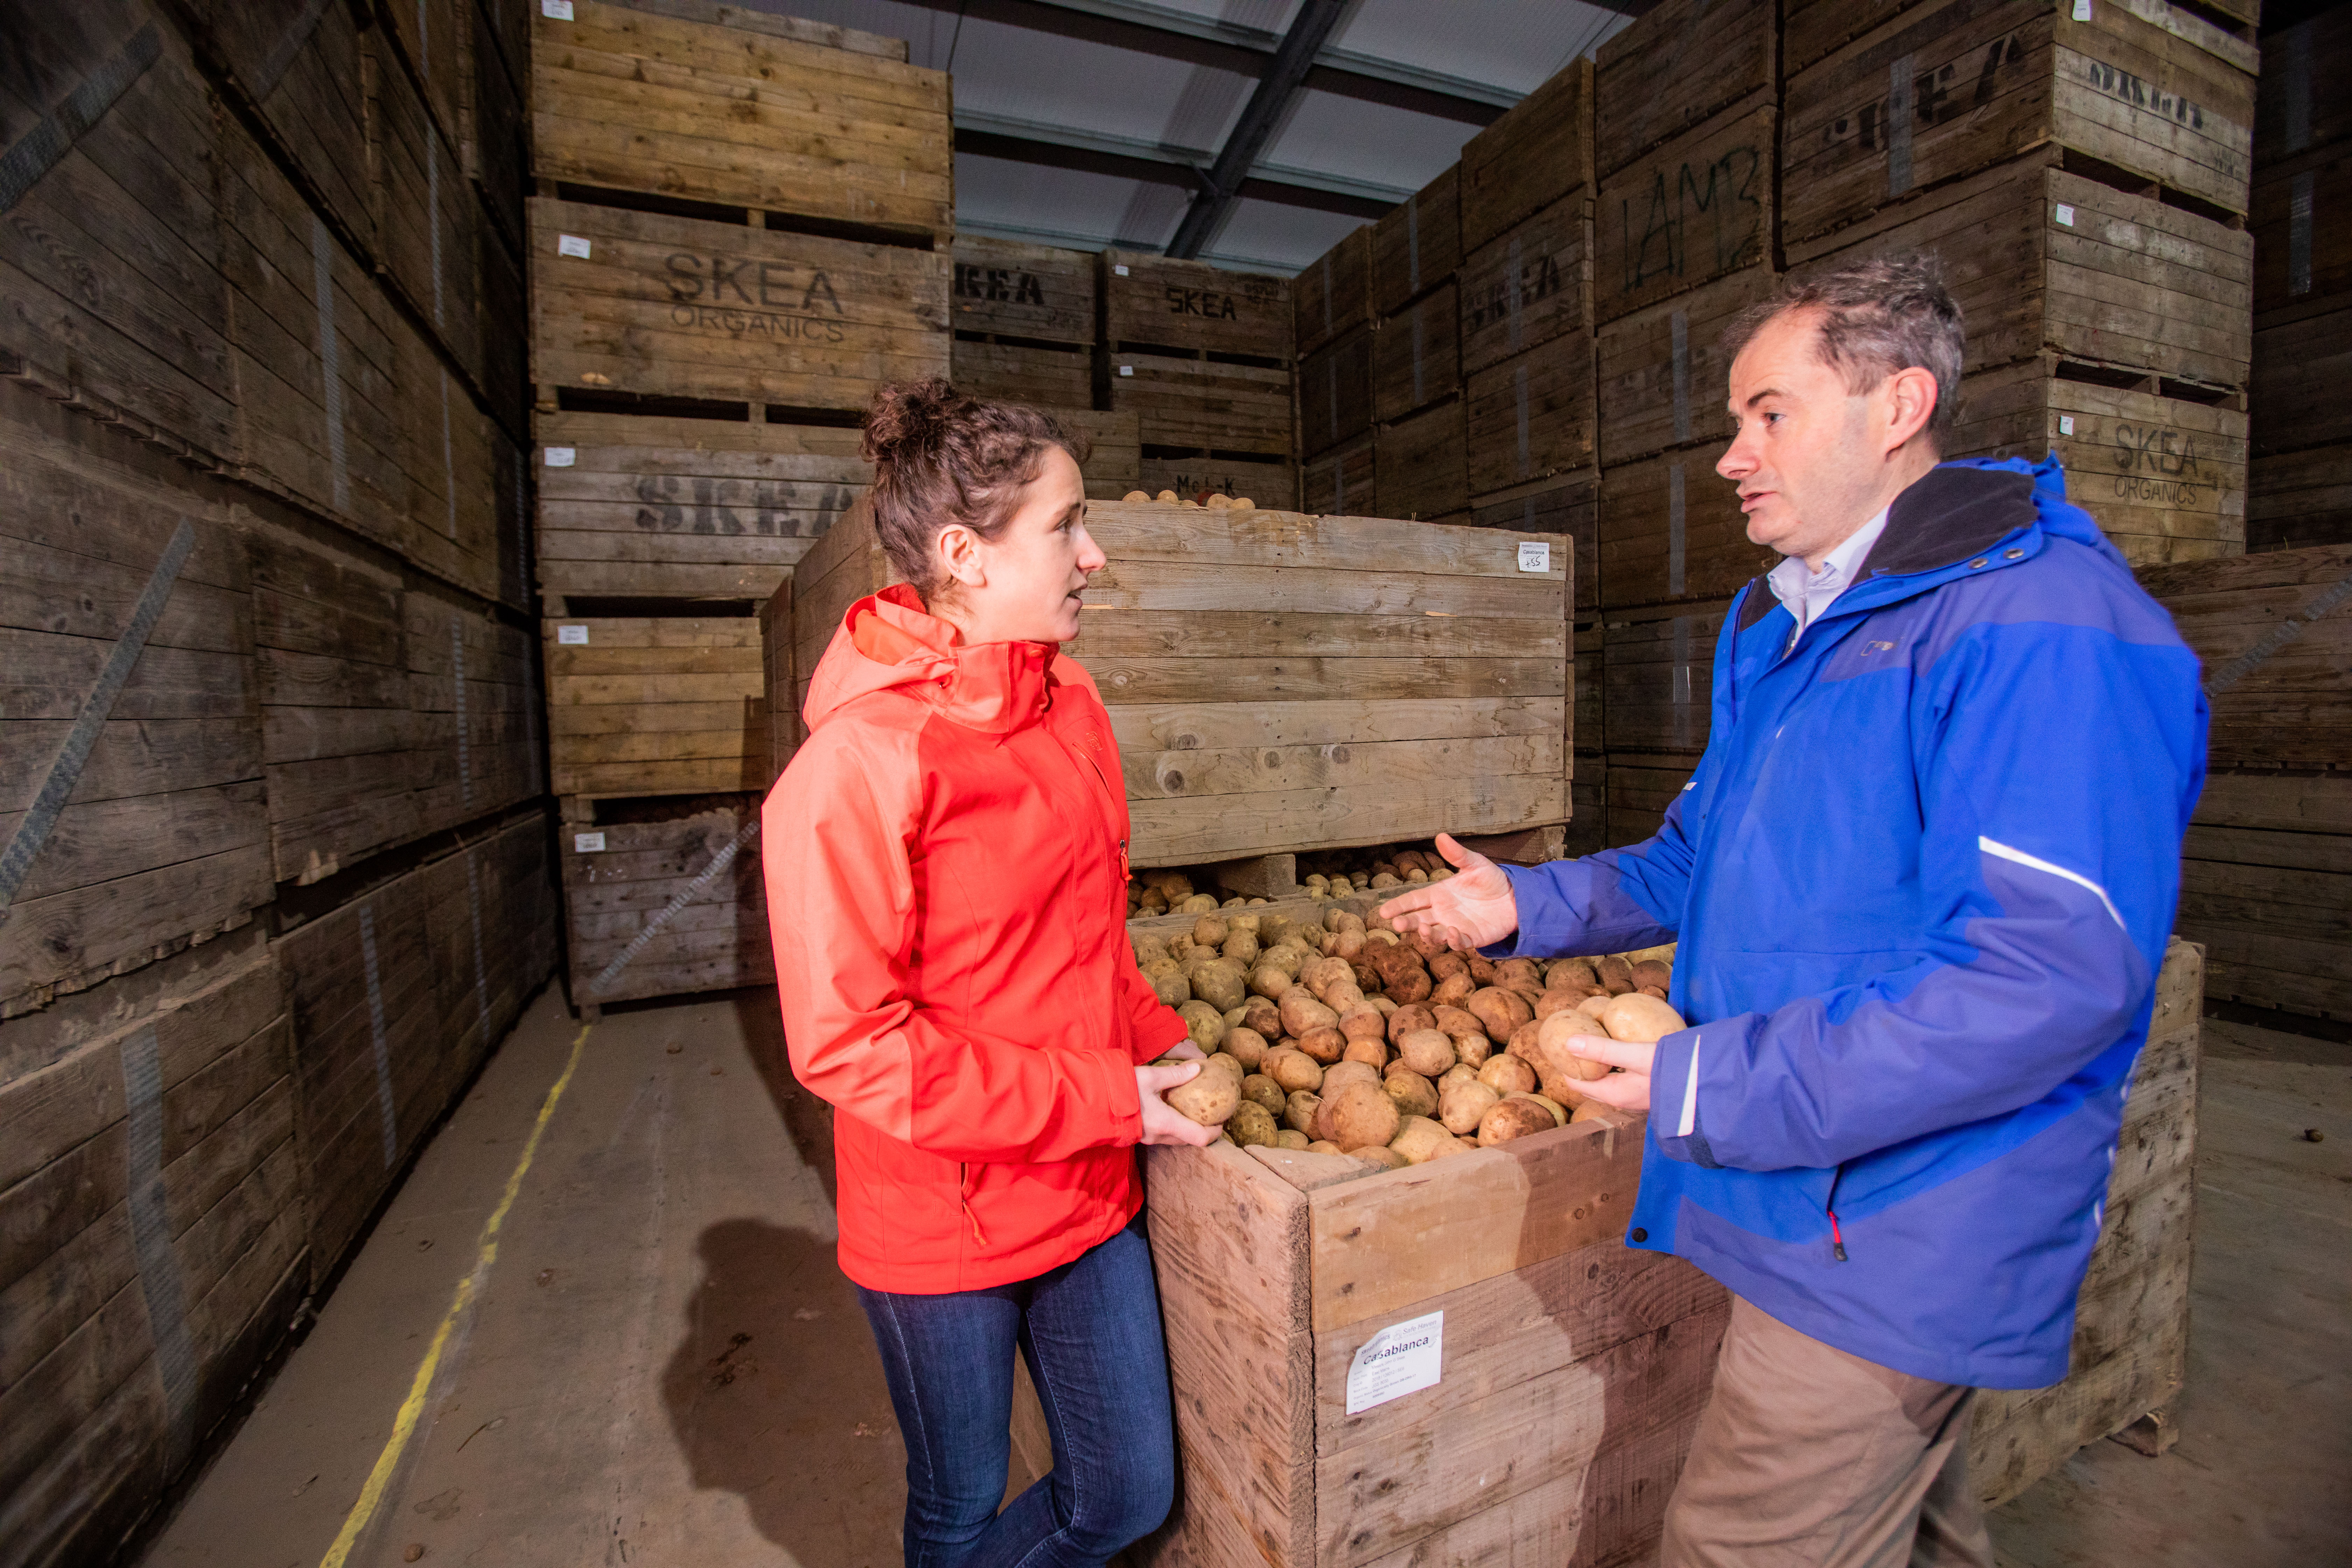 Rural Affairs Minister Mairi Gougeon with seed potato producer Andrew Skea at his East Mains Farm, near Dundee. Picture: Steve MacDougall.